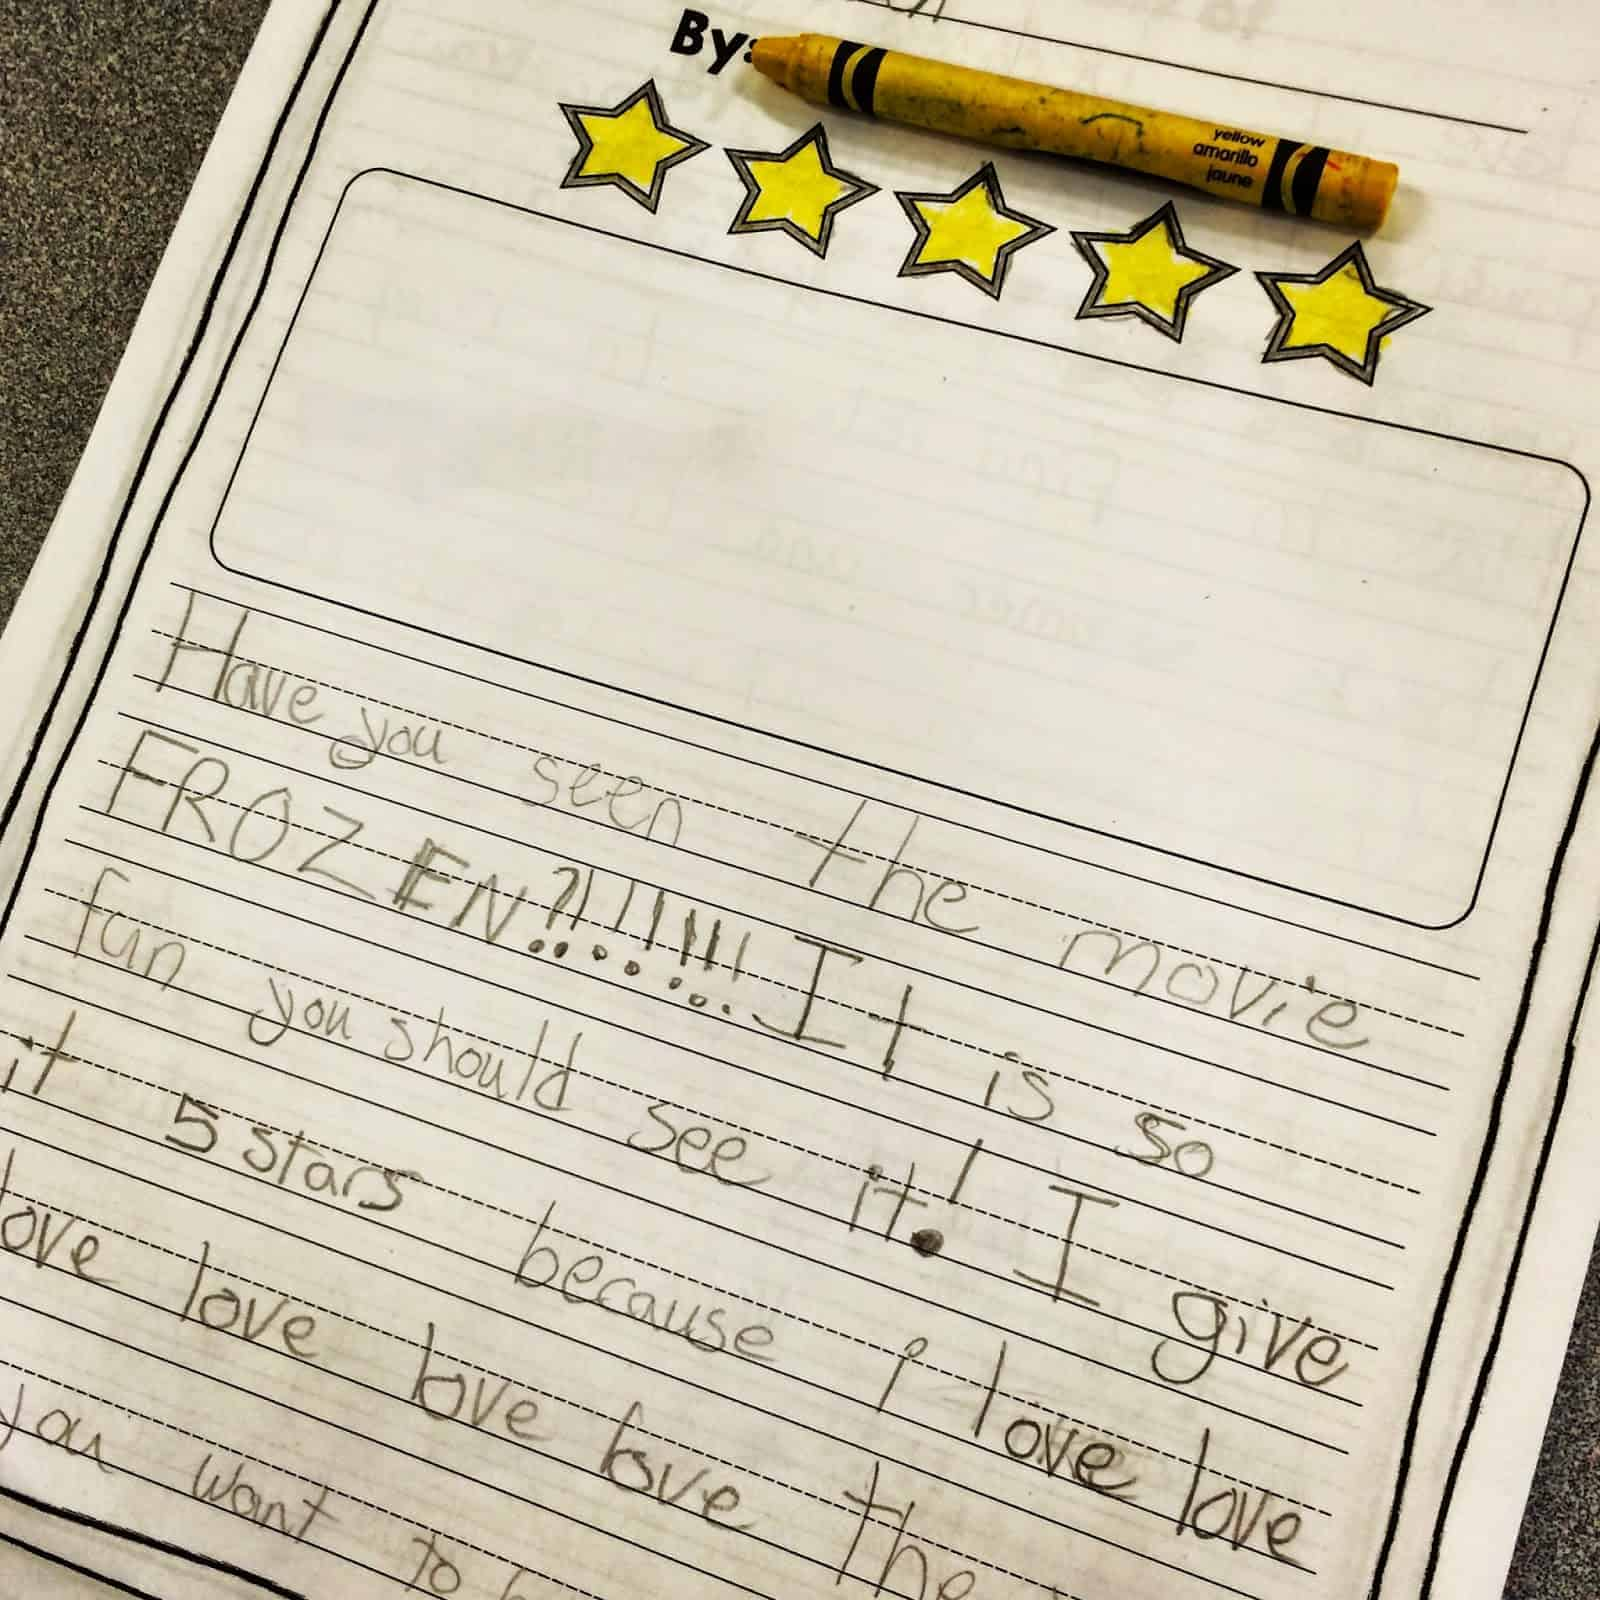 2014-04-08-10.51.35-2-1  Rd Grade Persuasive Letter Template on reading book report, narrative writing, lined writing paper, non-fiction book report, research paper, guided reading lesson plan,